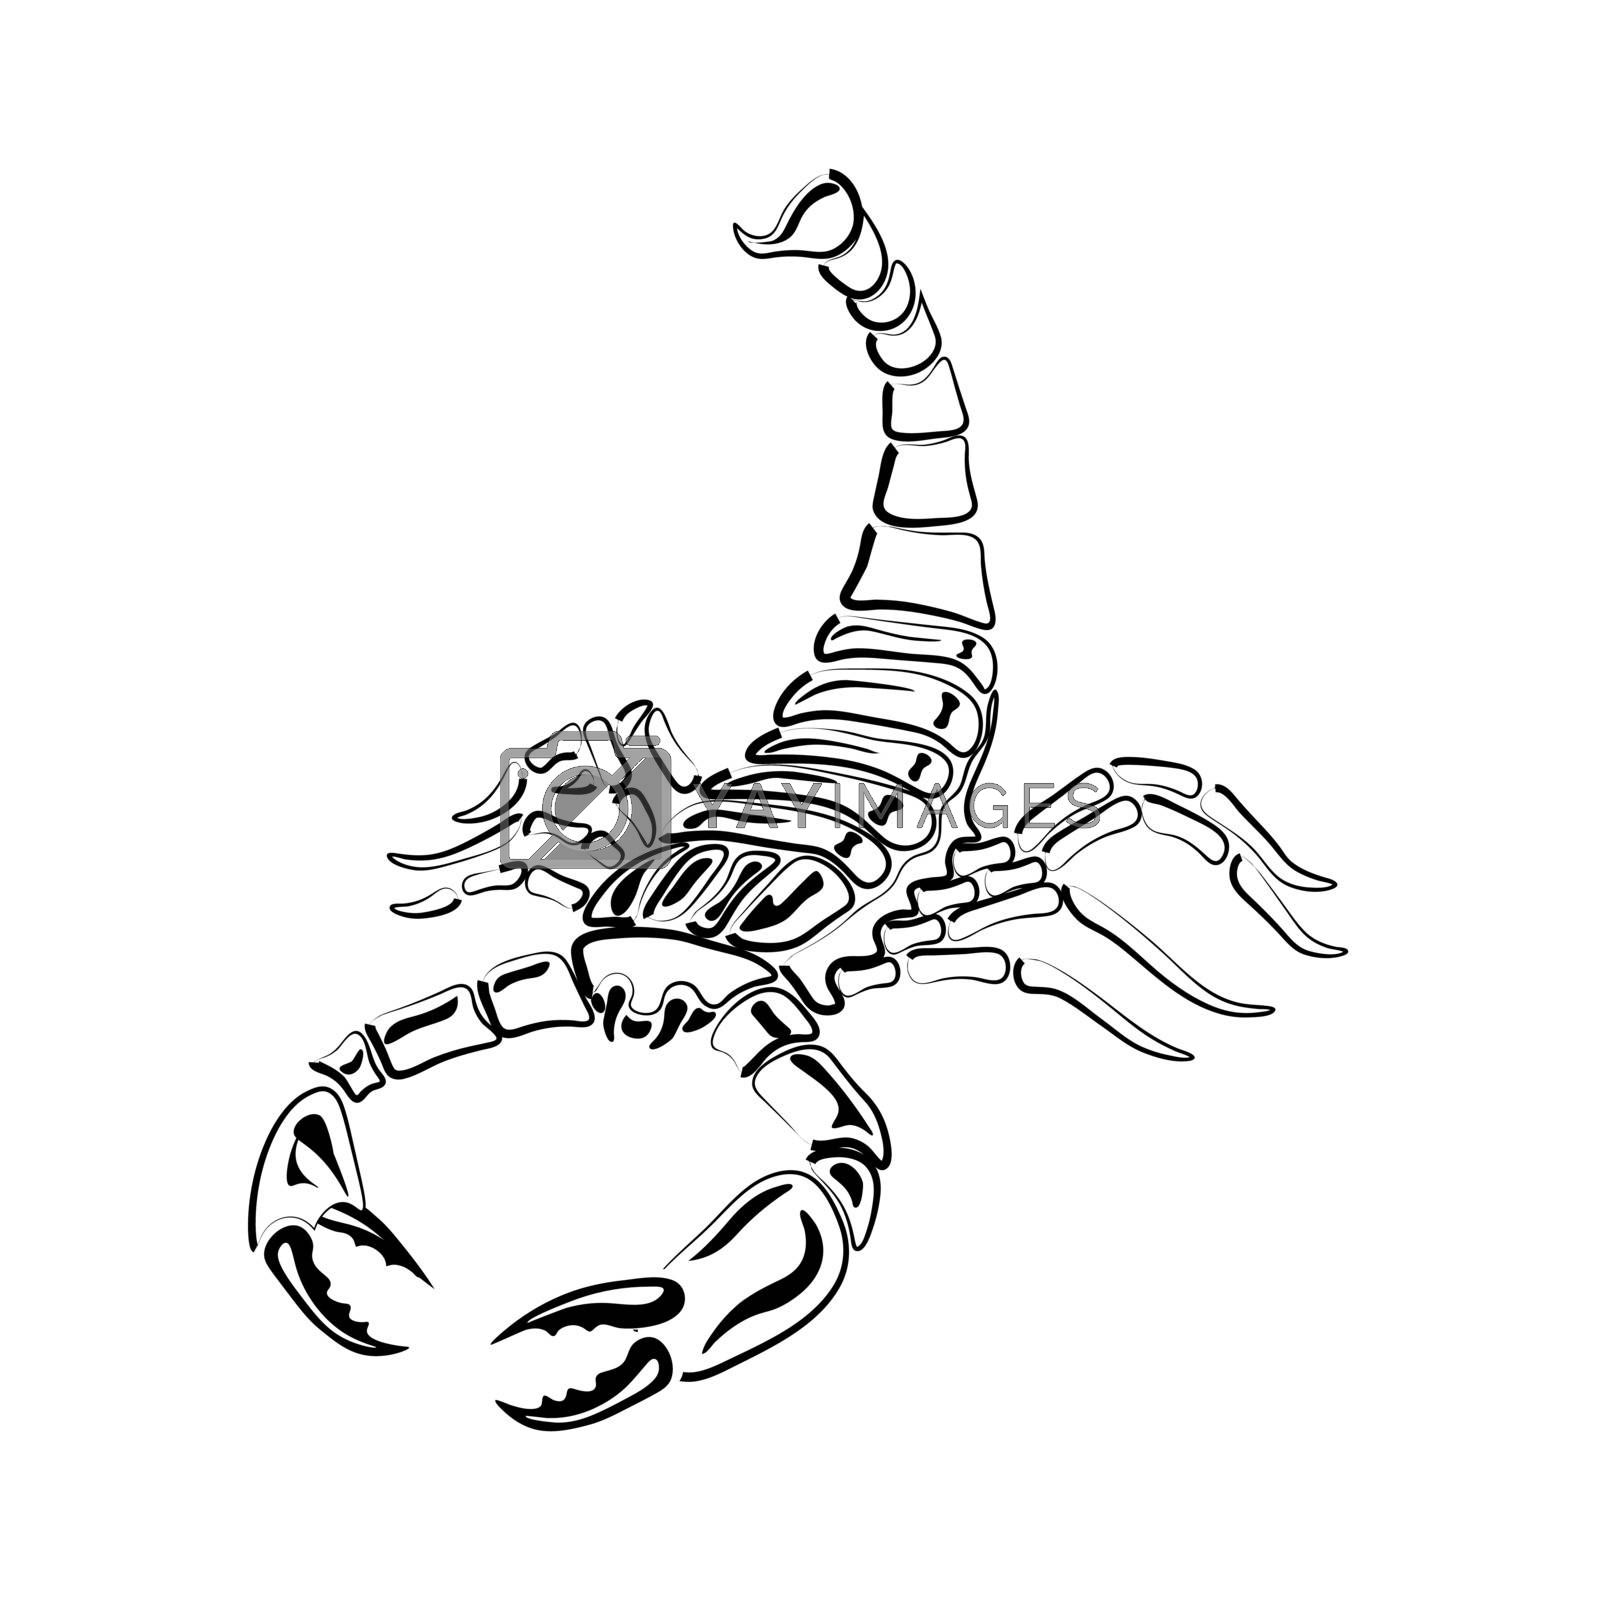 Aggressive black and white Scorpion for tattoos, zodiac sign. Made with a predominance of white. Vector illustration